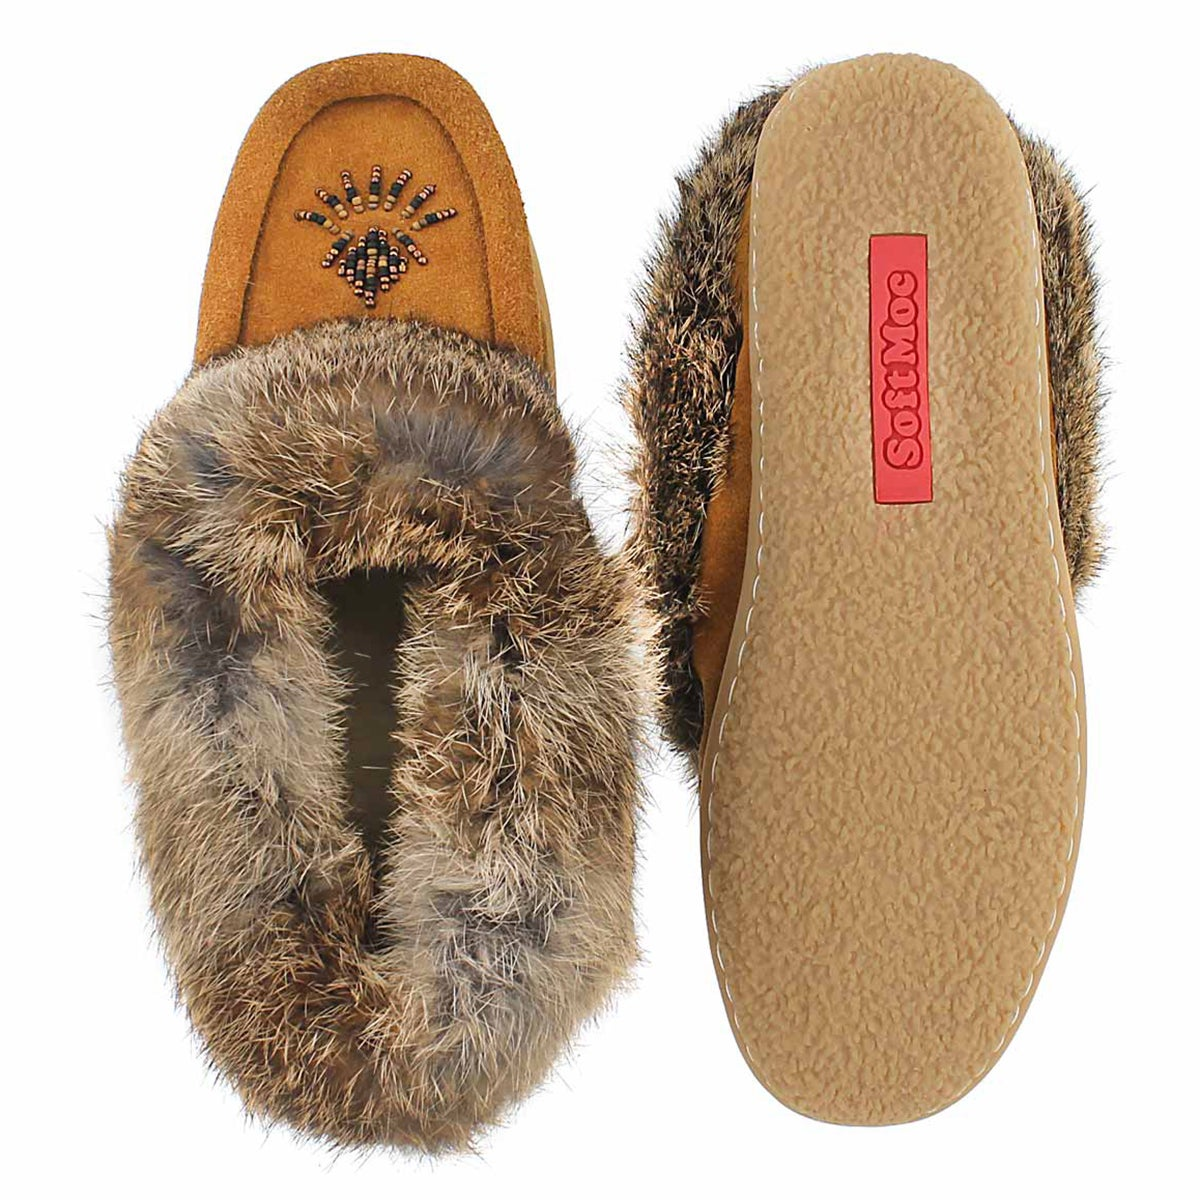 Lds Cute 4 mocha rabbit fur moccasin